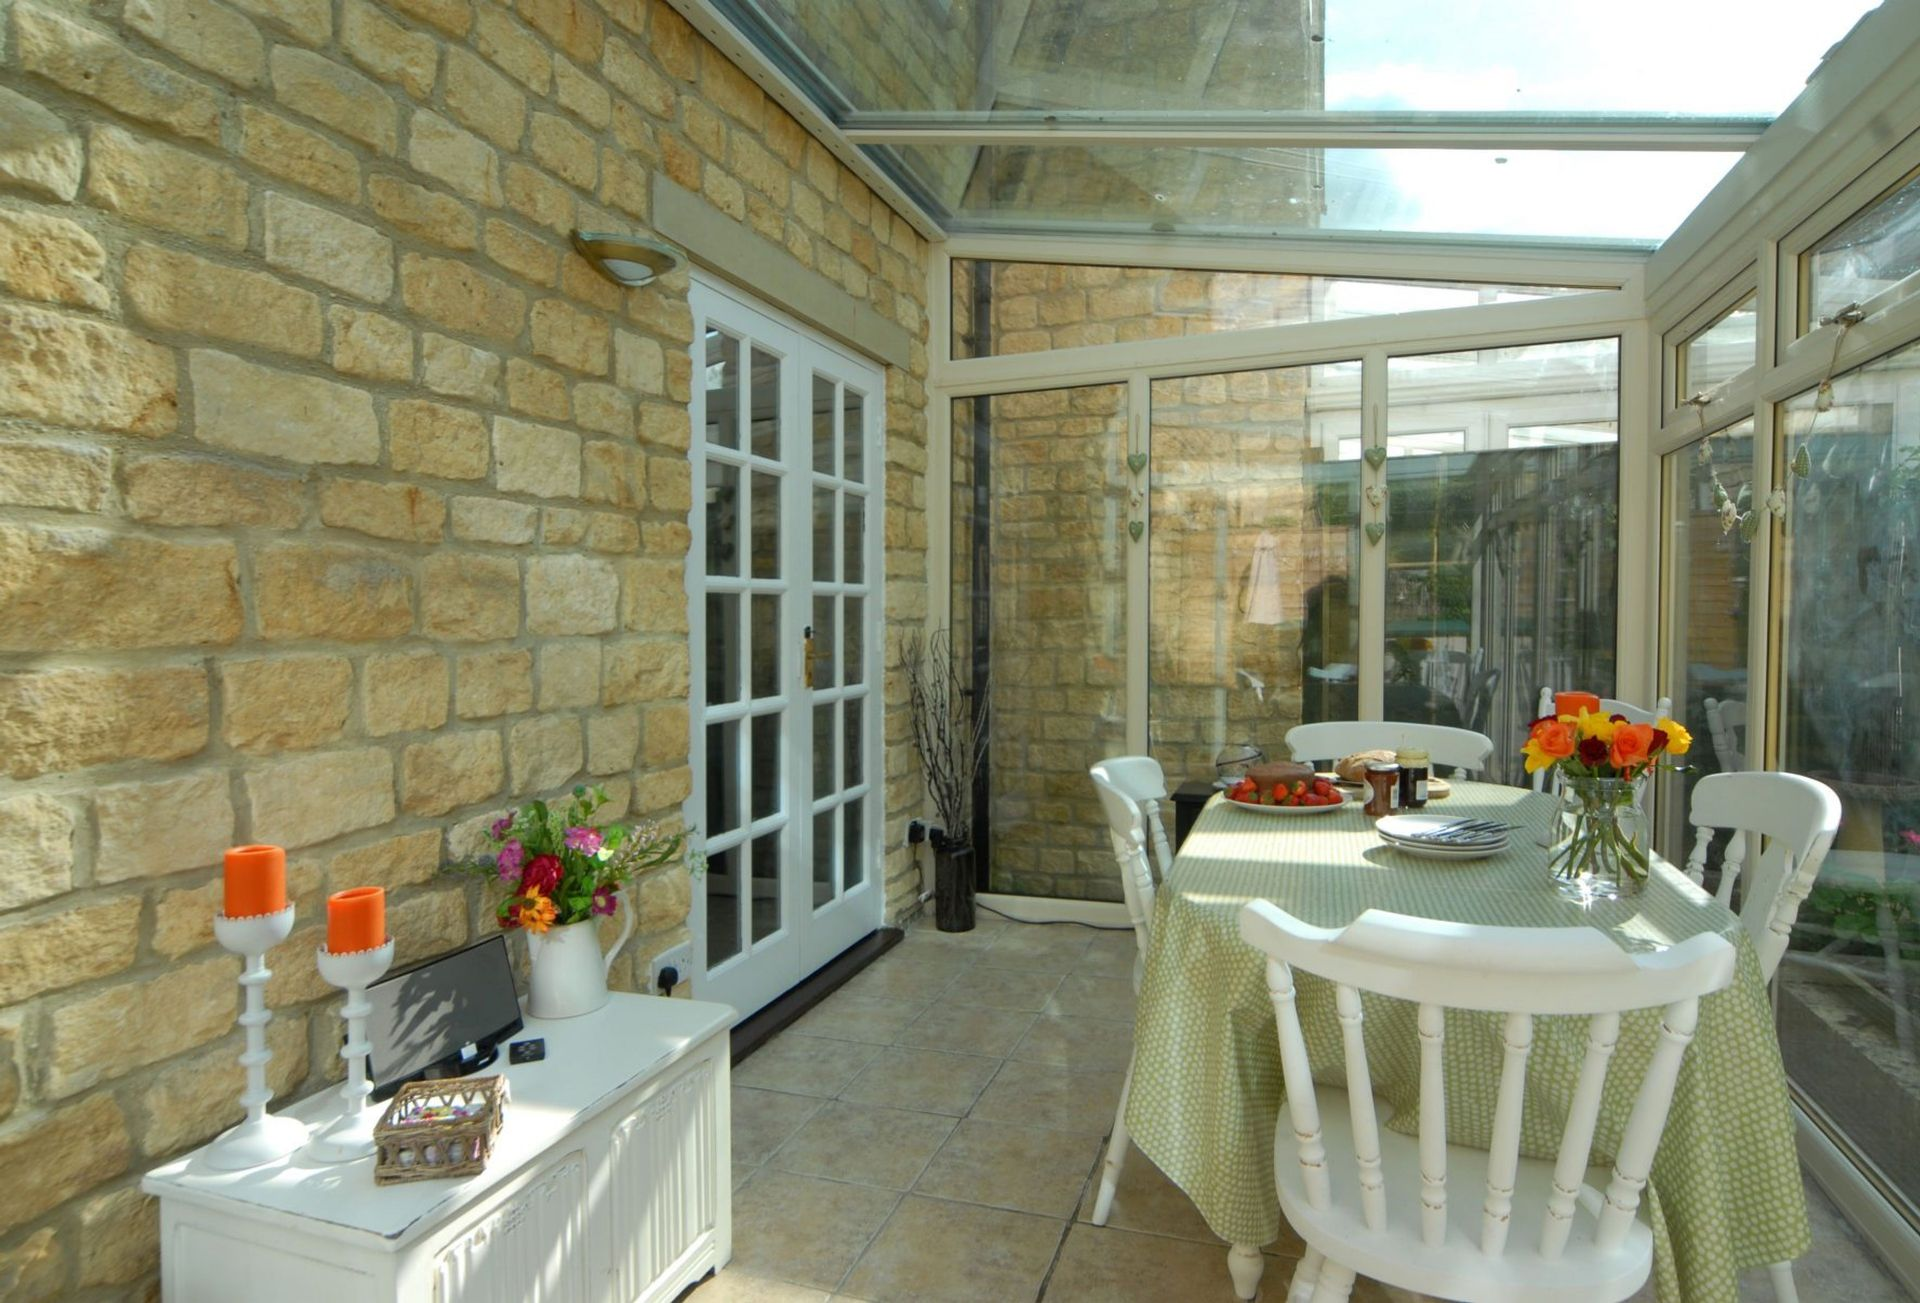 A view of the dining conservatory